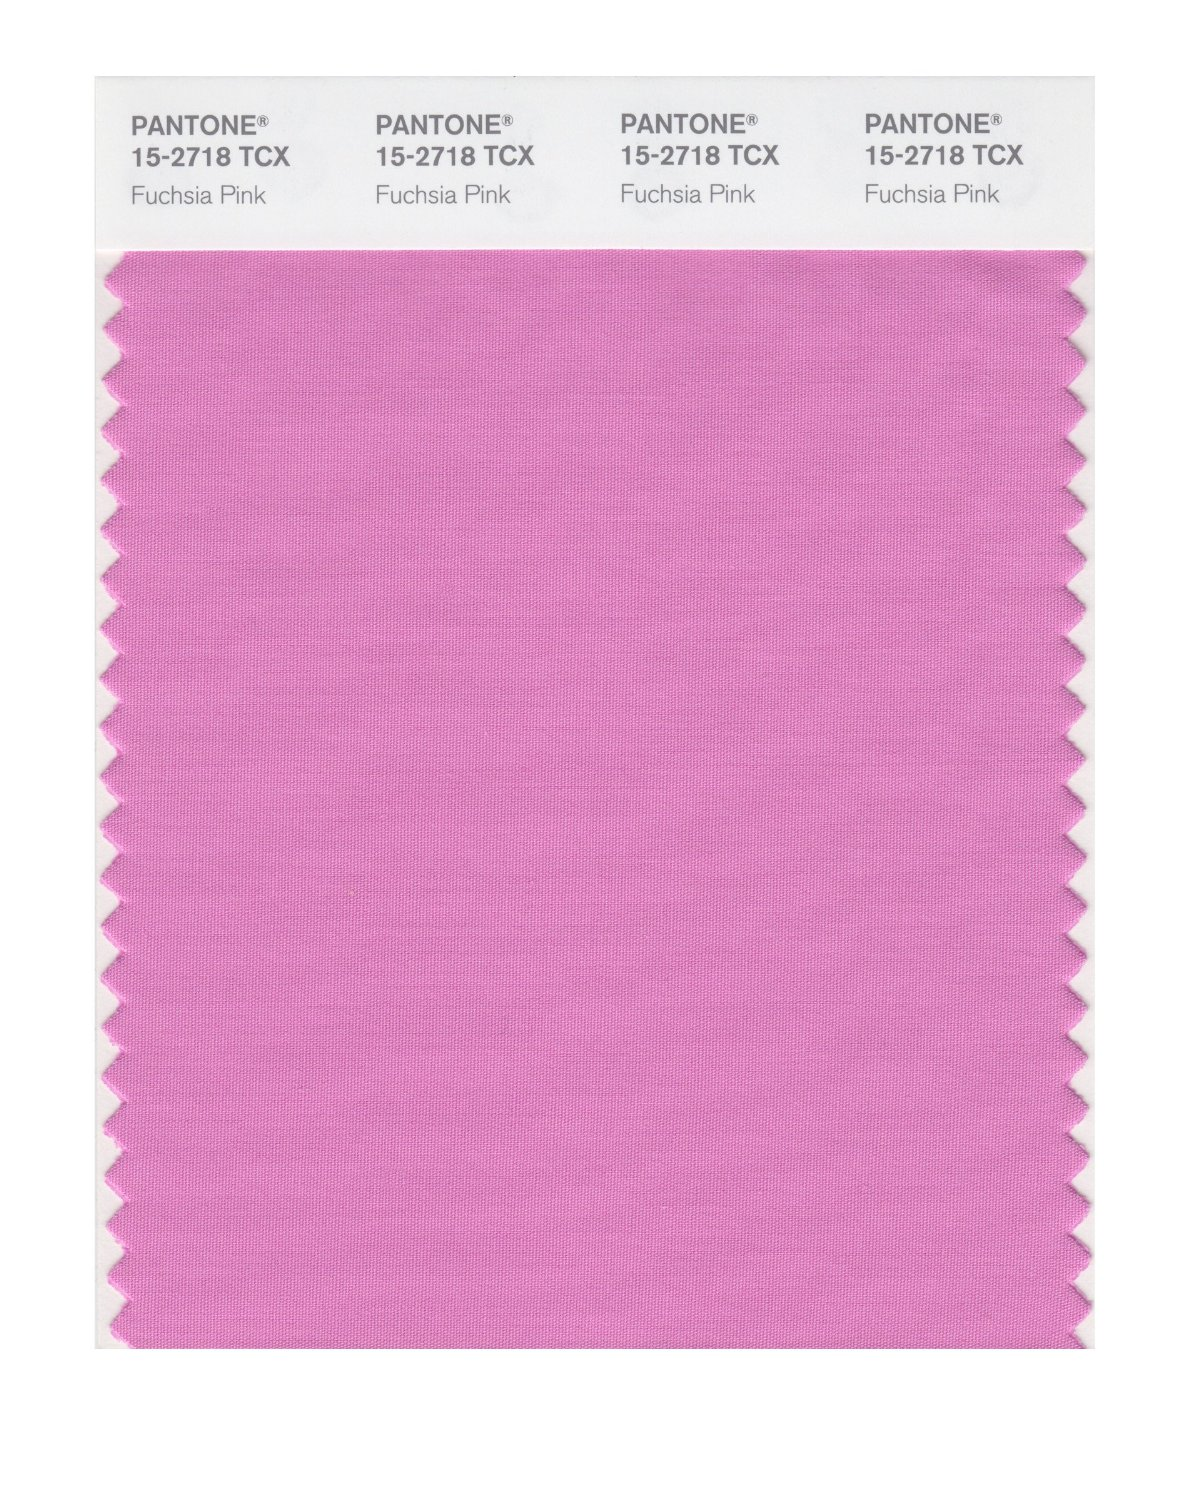 Pantone Smart Swatch 15-2718 Fuchsia Pink